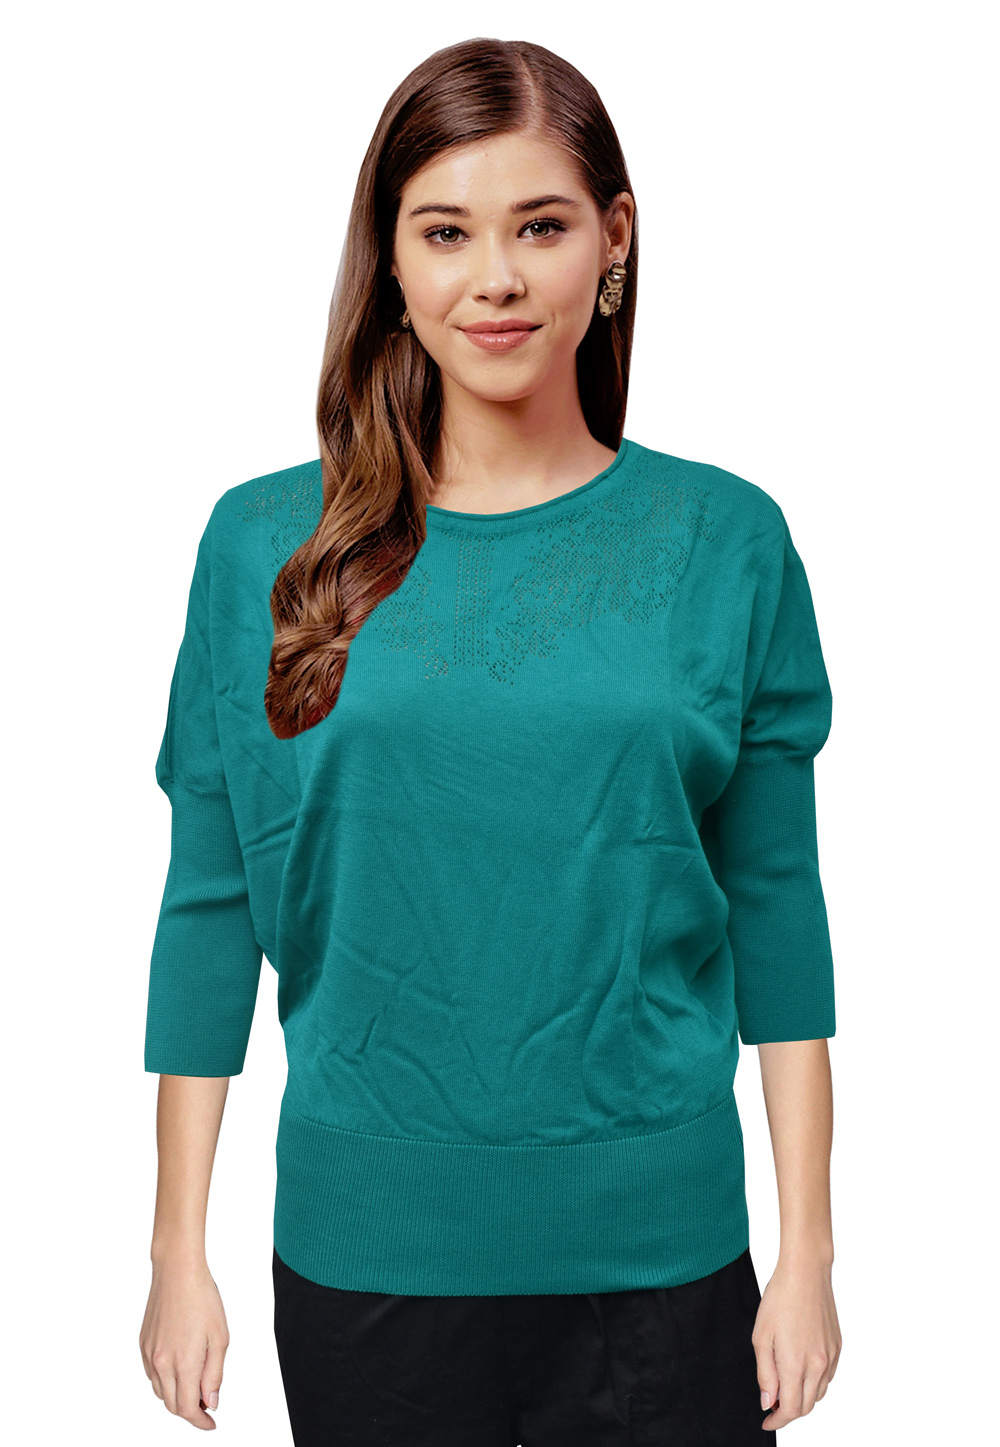 Teal Woolen Knitted Tops 214238